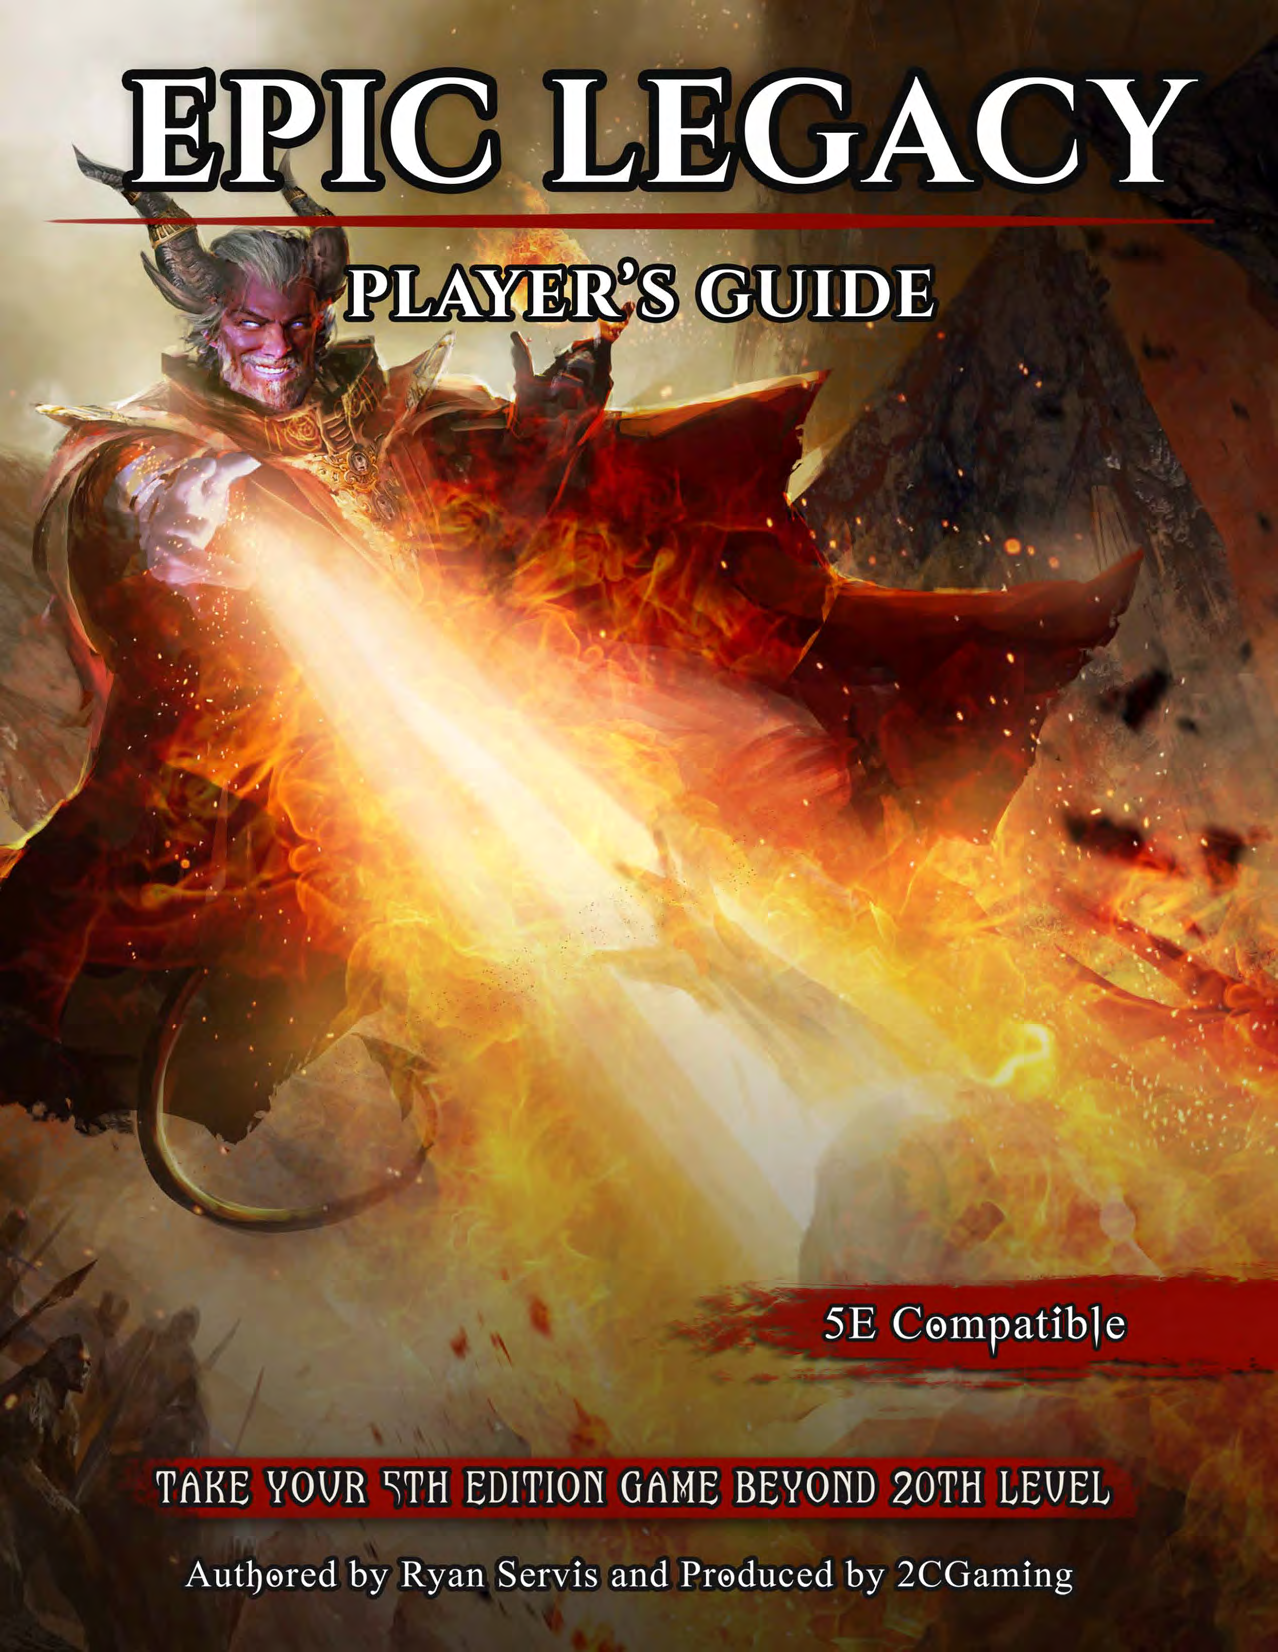 Epic Legacy Player's Guide – TBM Games